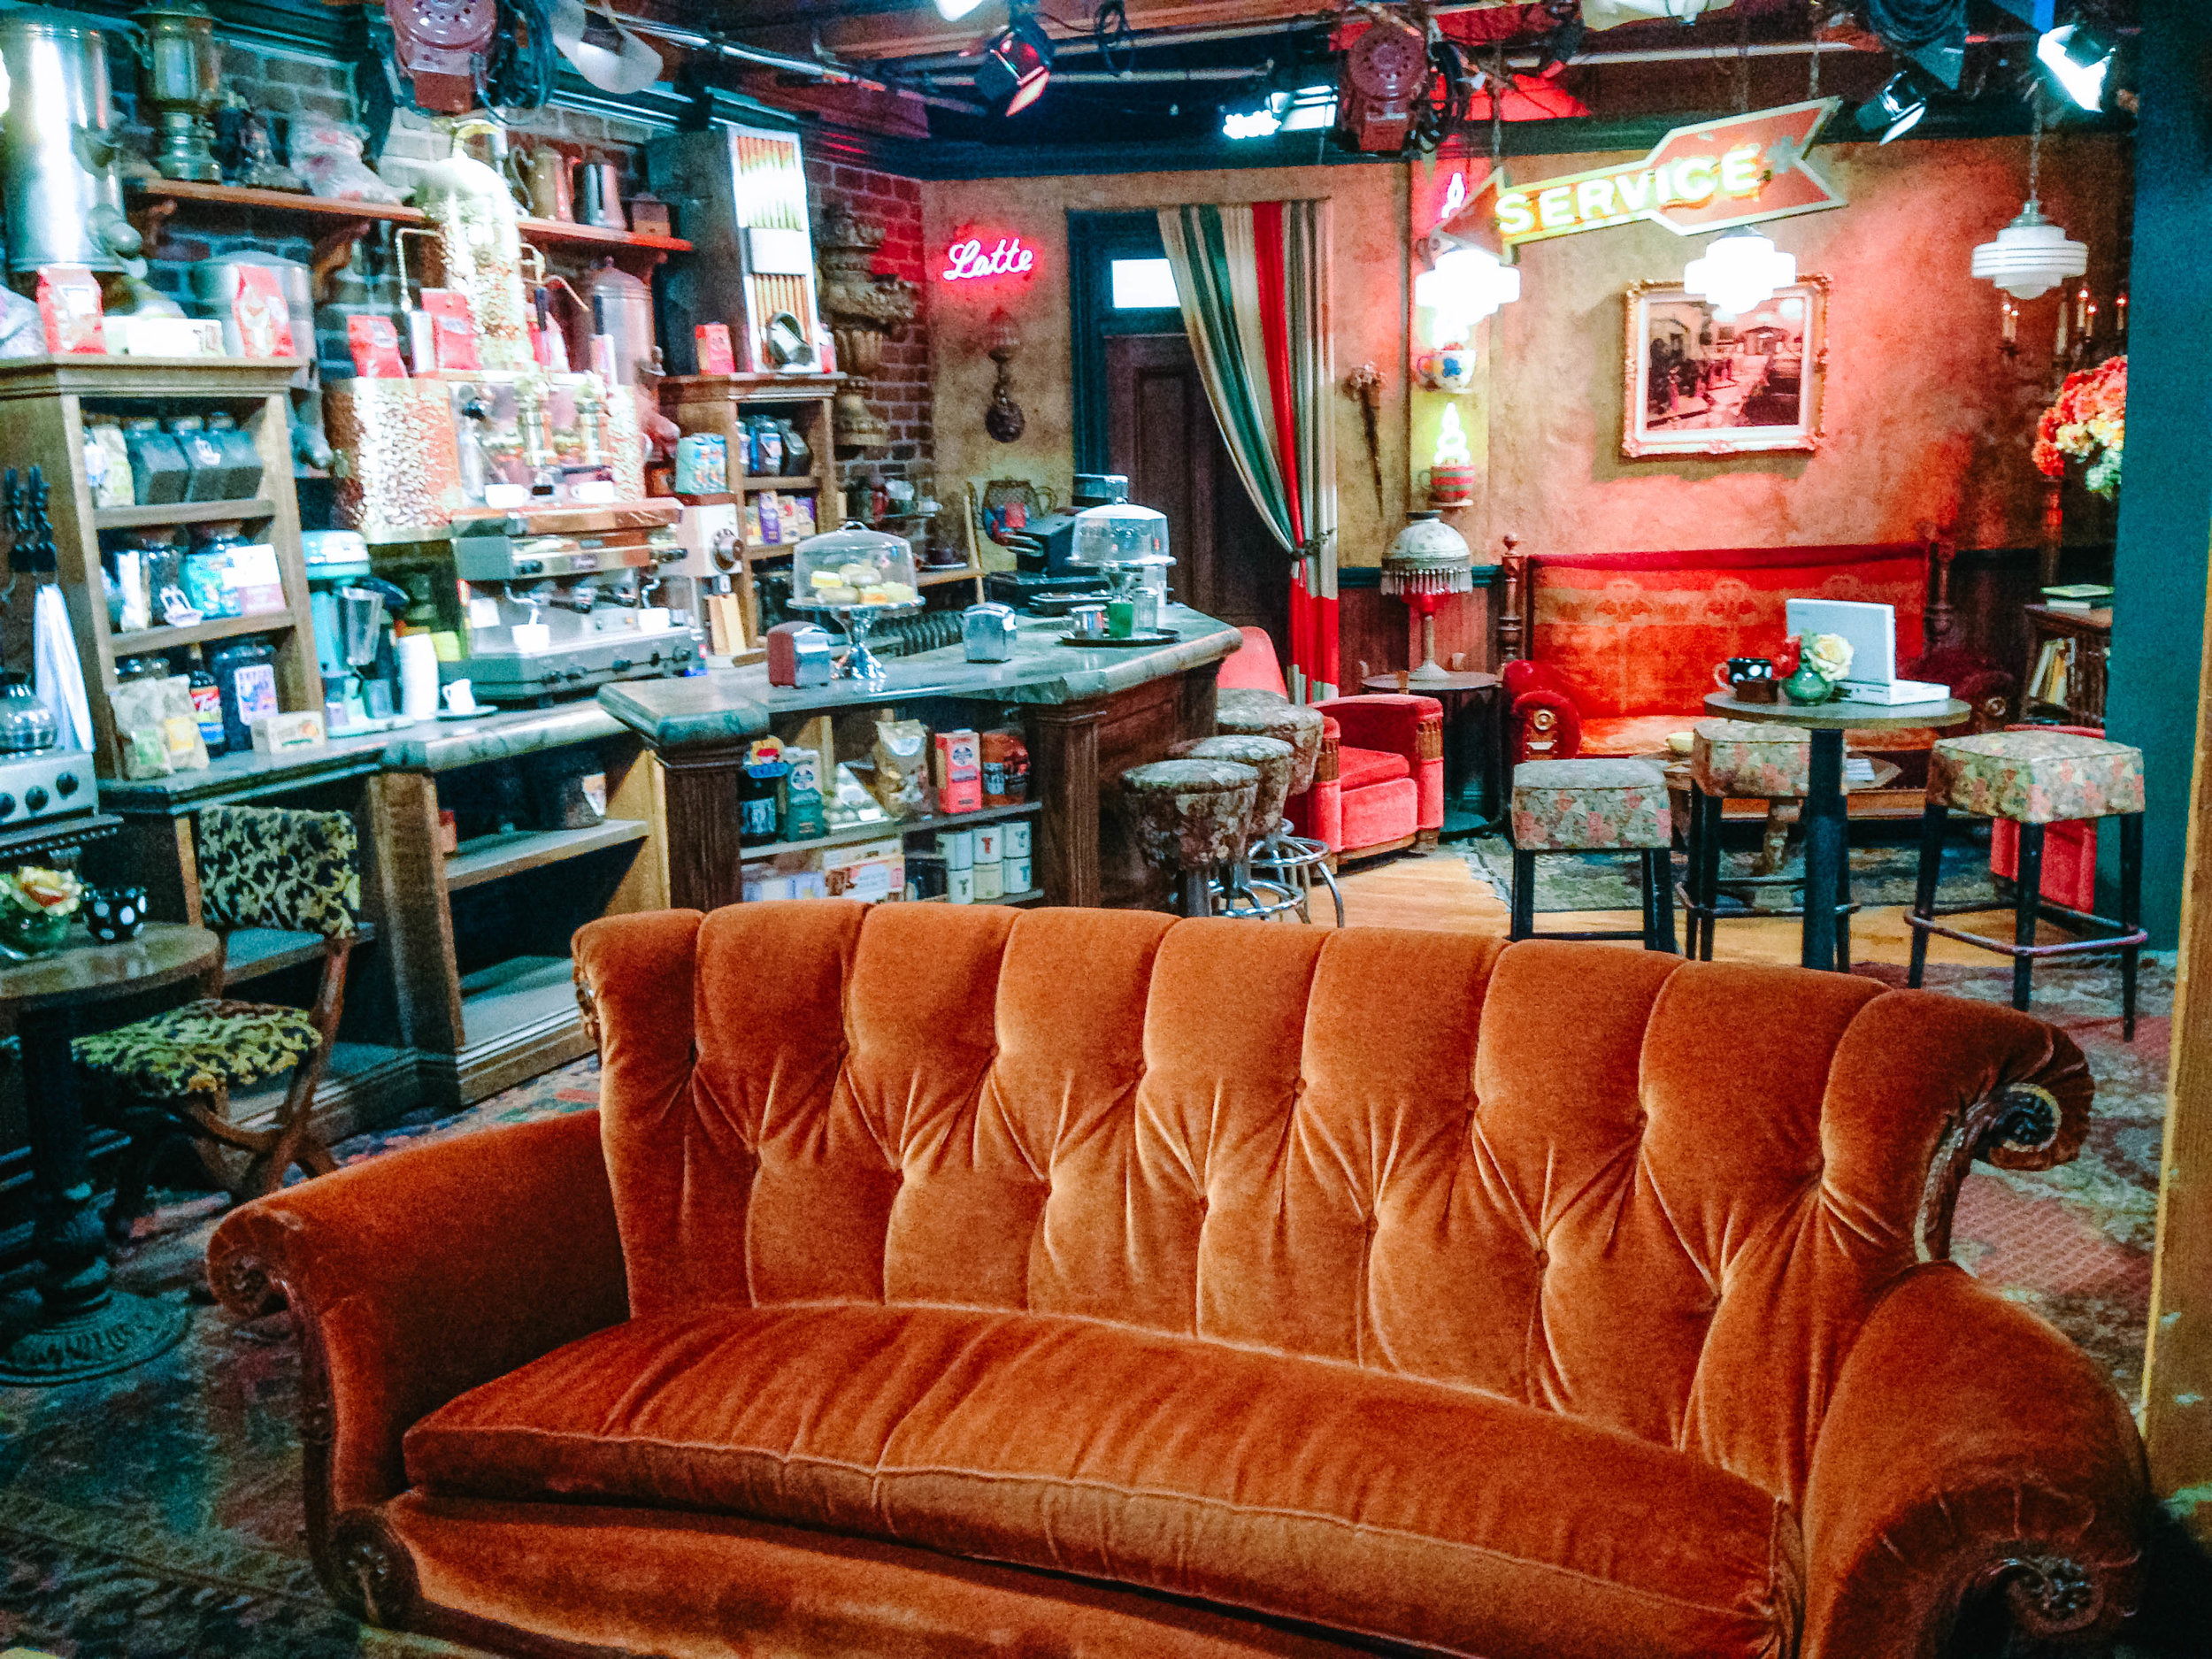 Friends Couch- Things to do in Los Angeles